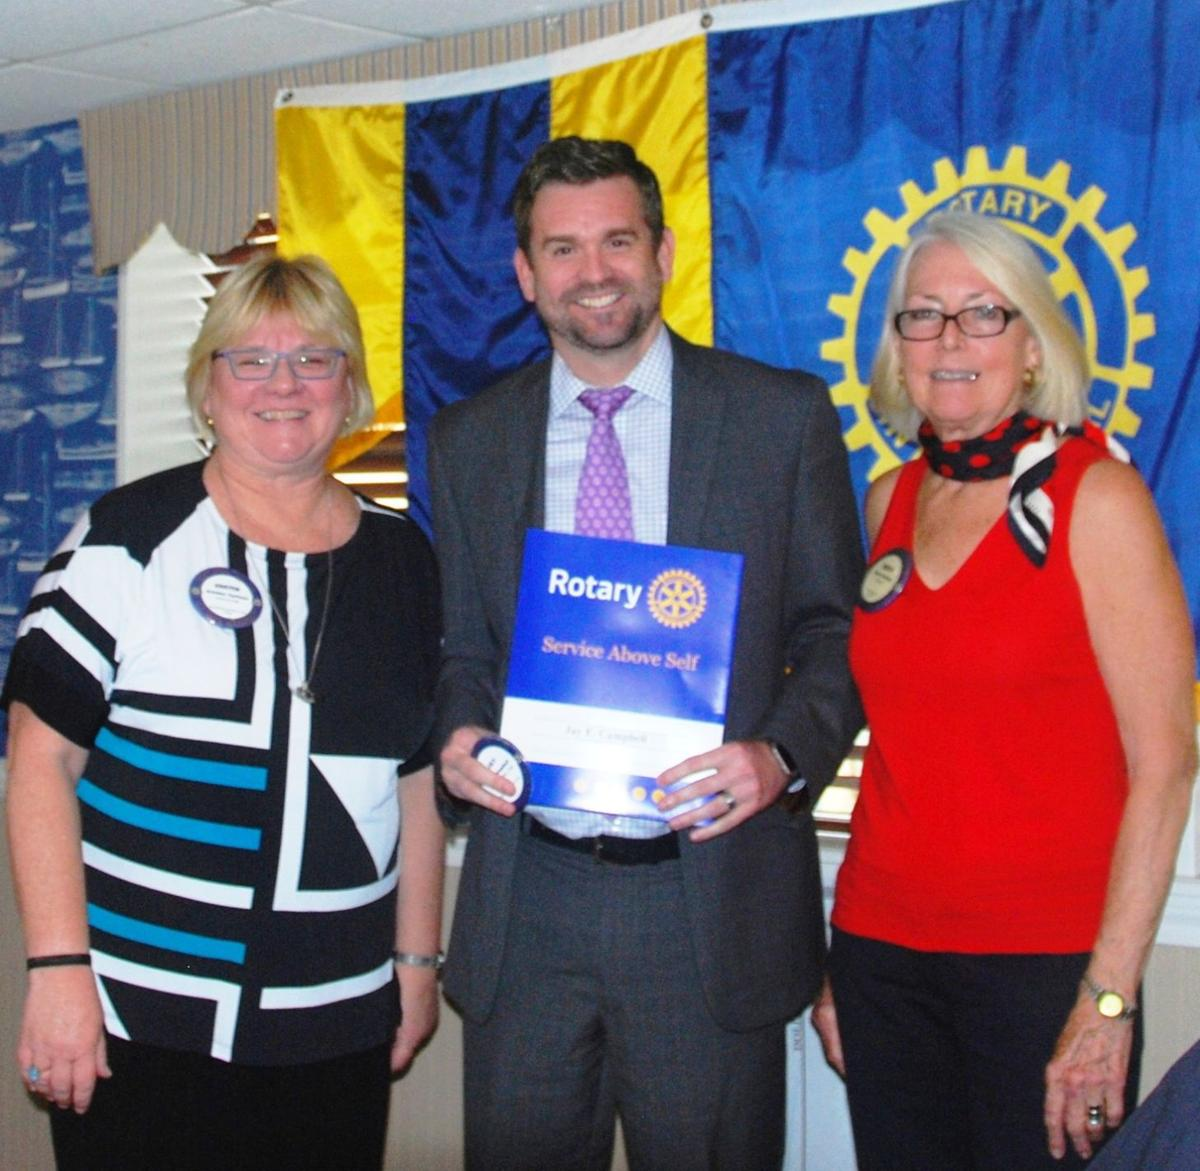 Jay Campbell joins rotary